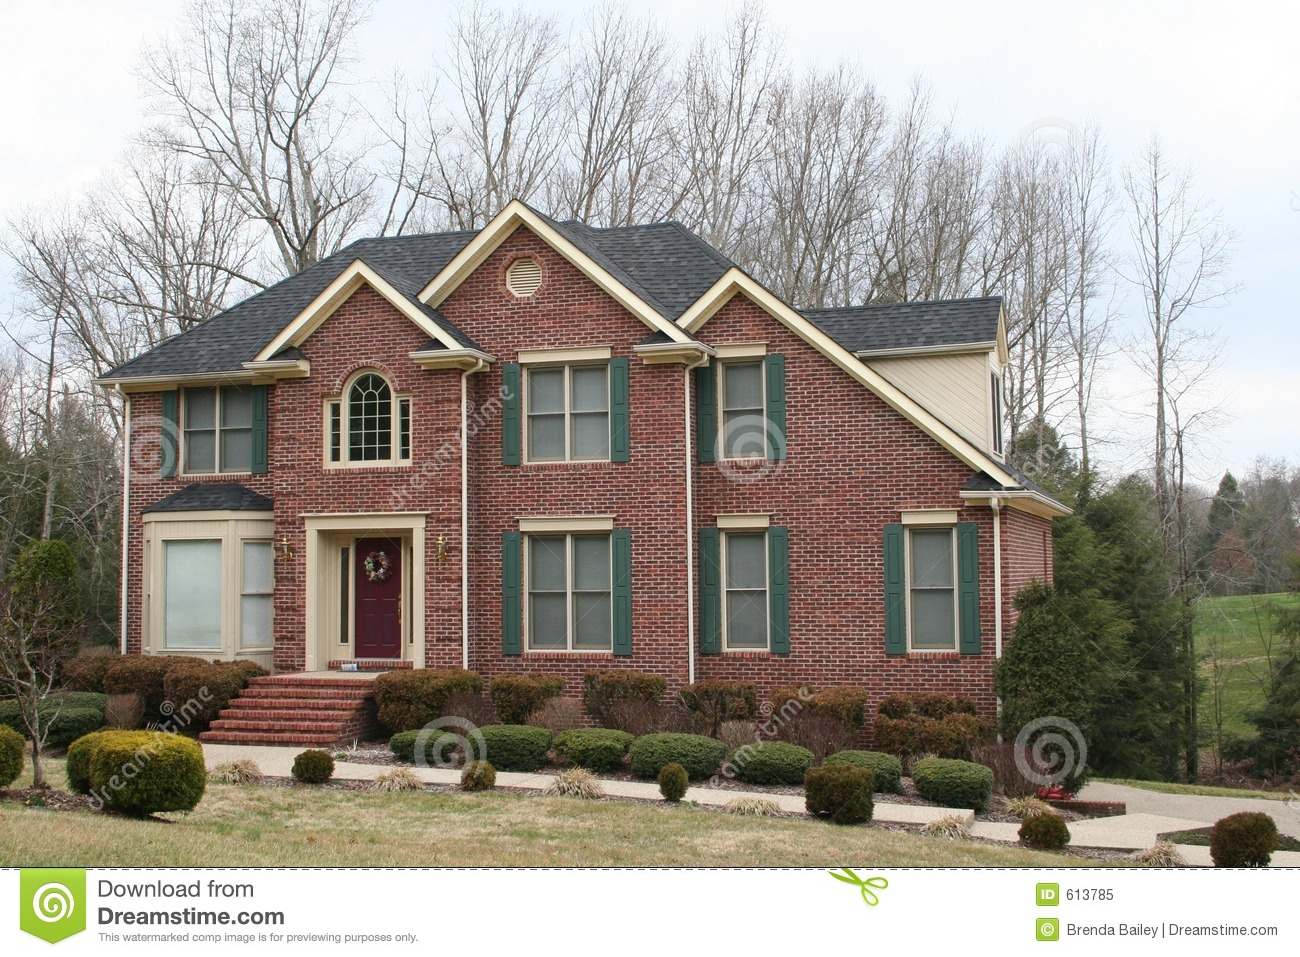 New brick home royalty free stock photo image 613785 for New brick homes